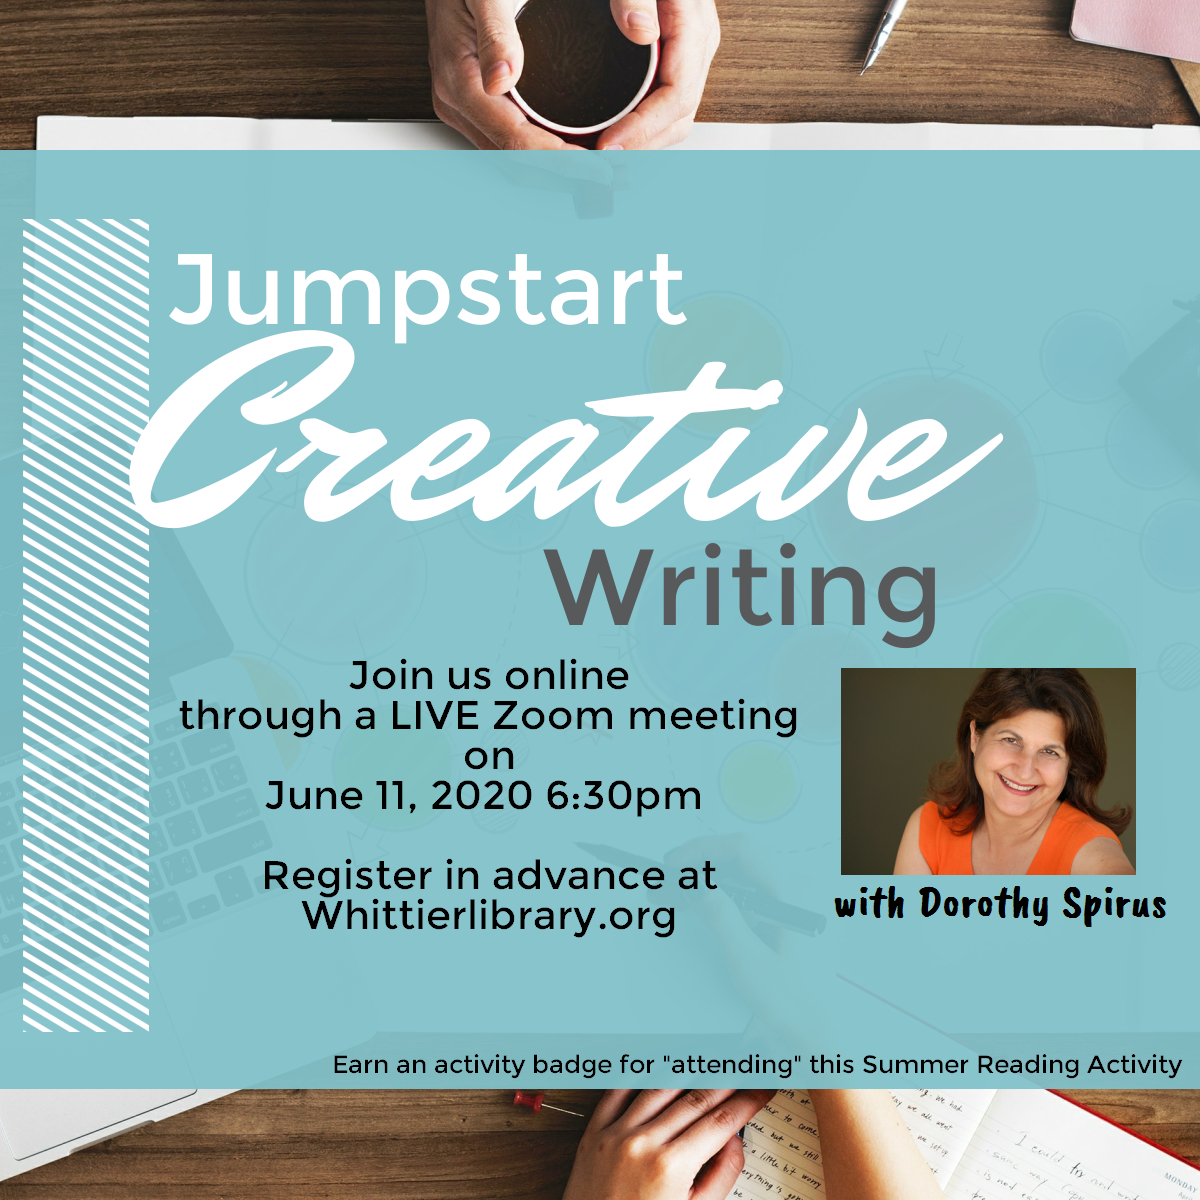 Creative Jumpstart Writing with Dorothy Spirus